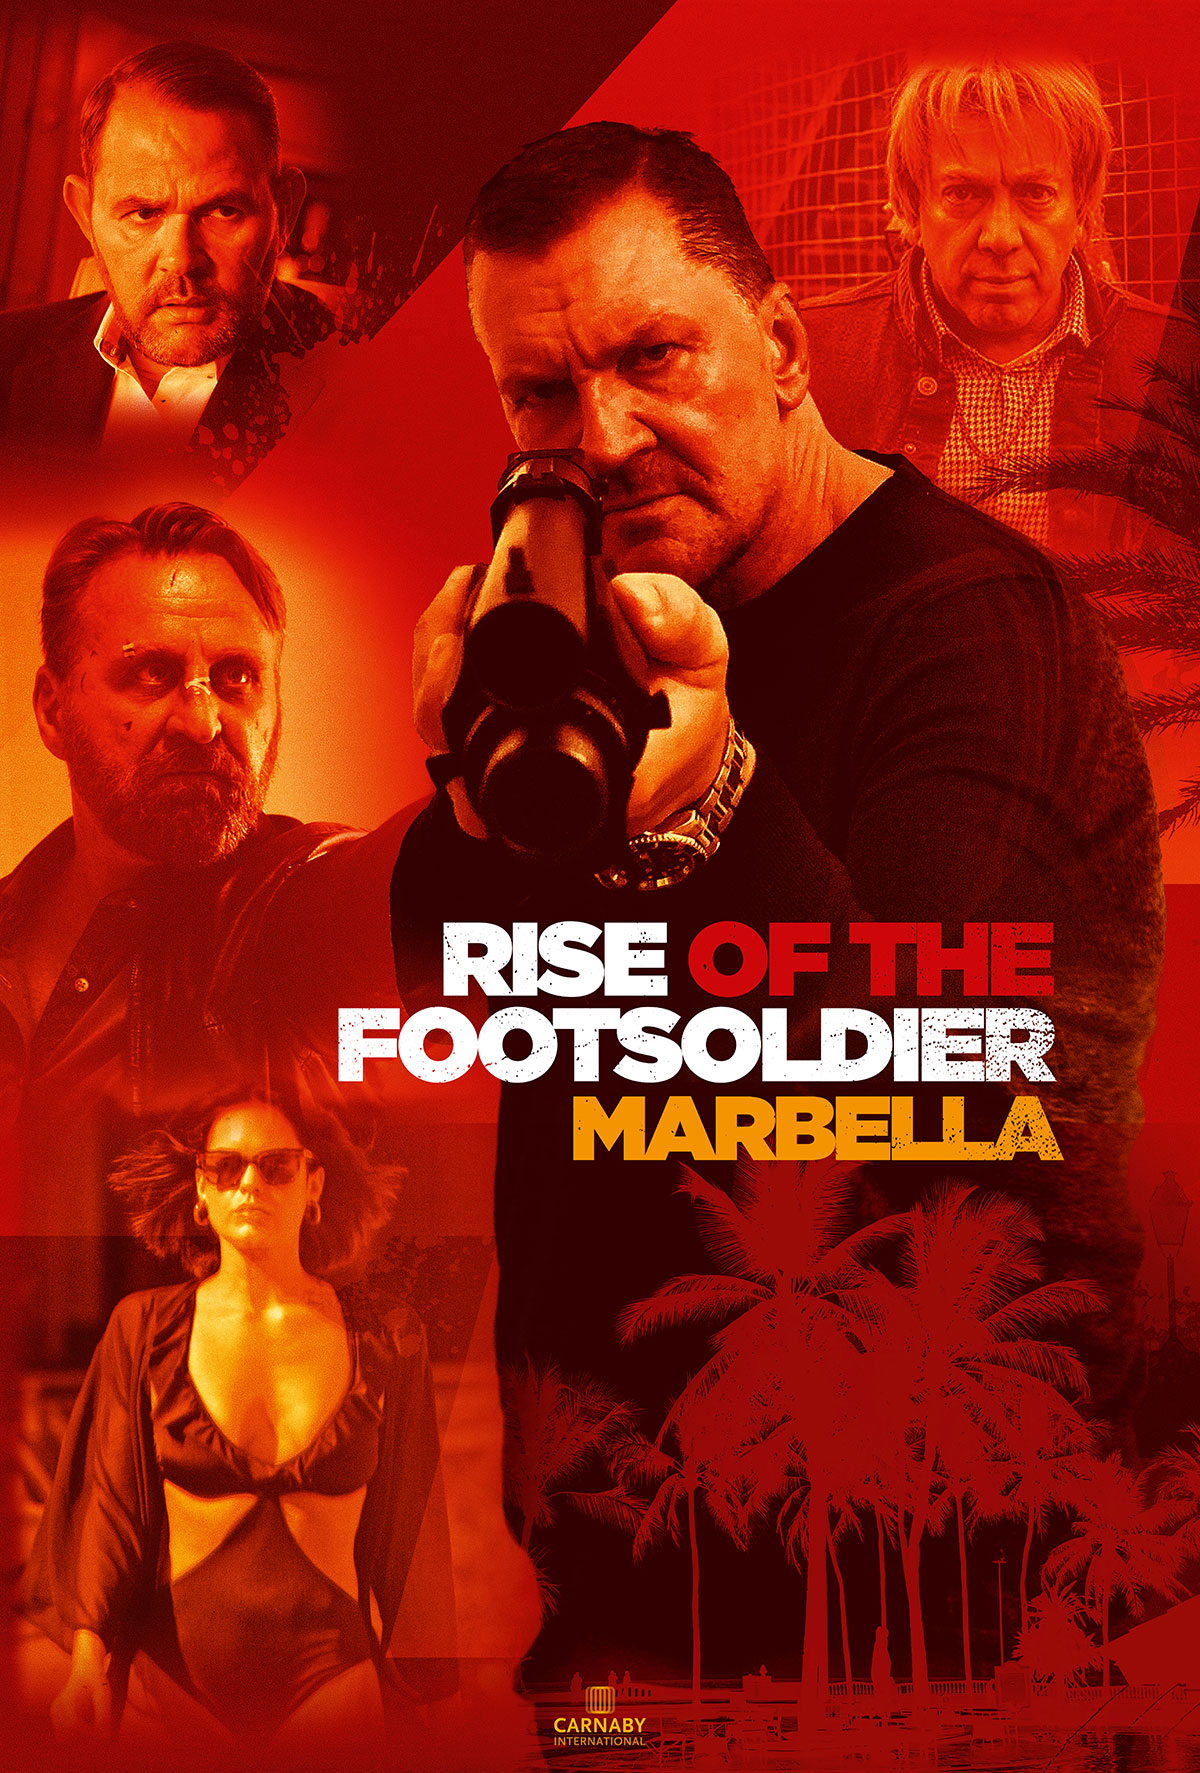 Rise of the Footsoldier Marbella - Carnaby International Sales & Distribution - UK Film